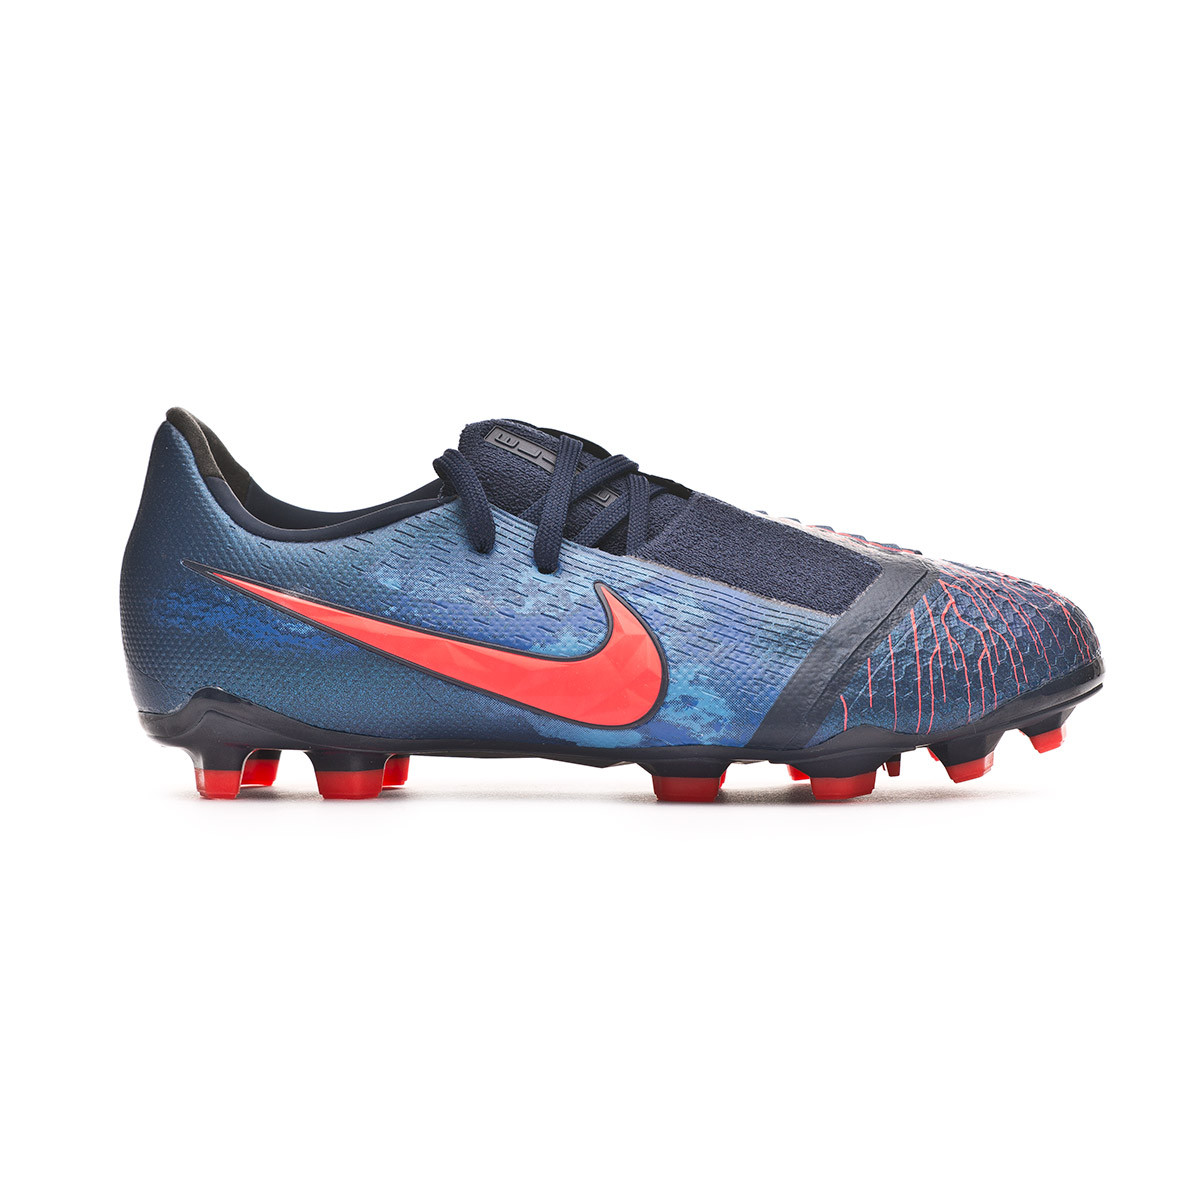 a09373a9b9 Football Boots Nike Kids Phantom Venom Elite FG Obsidian-White-Black-Racer  blue - Football store Fútbol Emotion